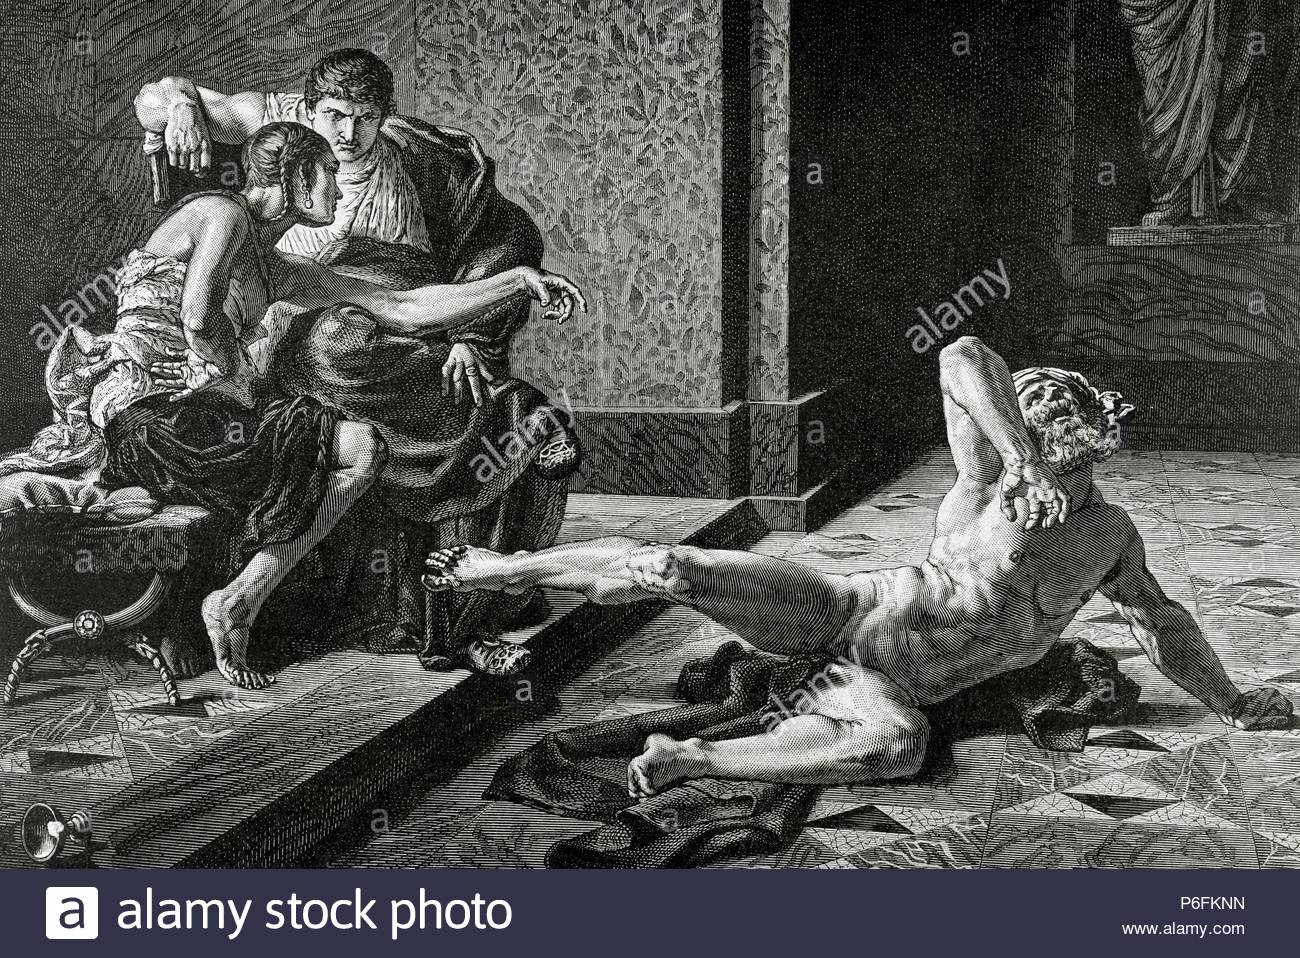 Locusta. Notorious in Ancient Rome for her skill in concocting poisons. Nero and Locusta. Engraving by Duviviso. 19th century. - Stock Image